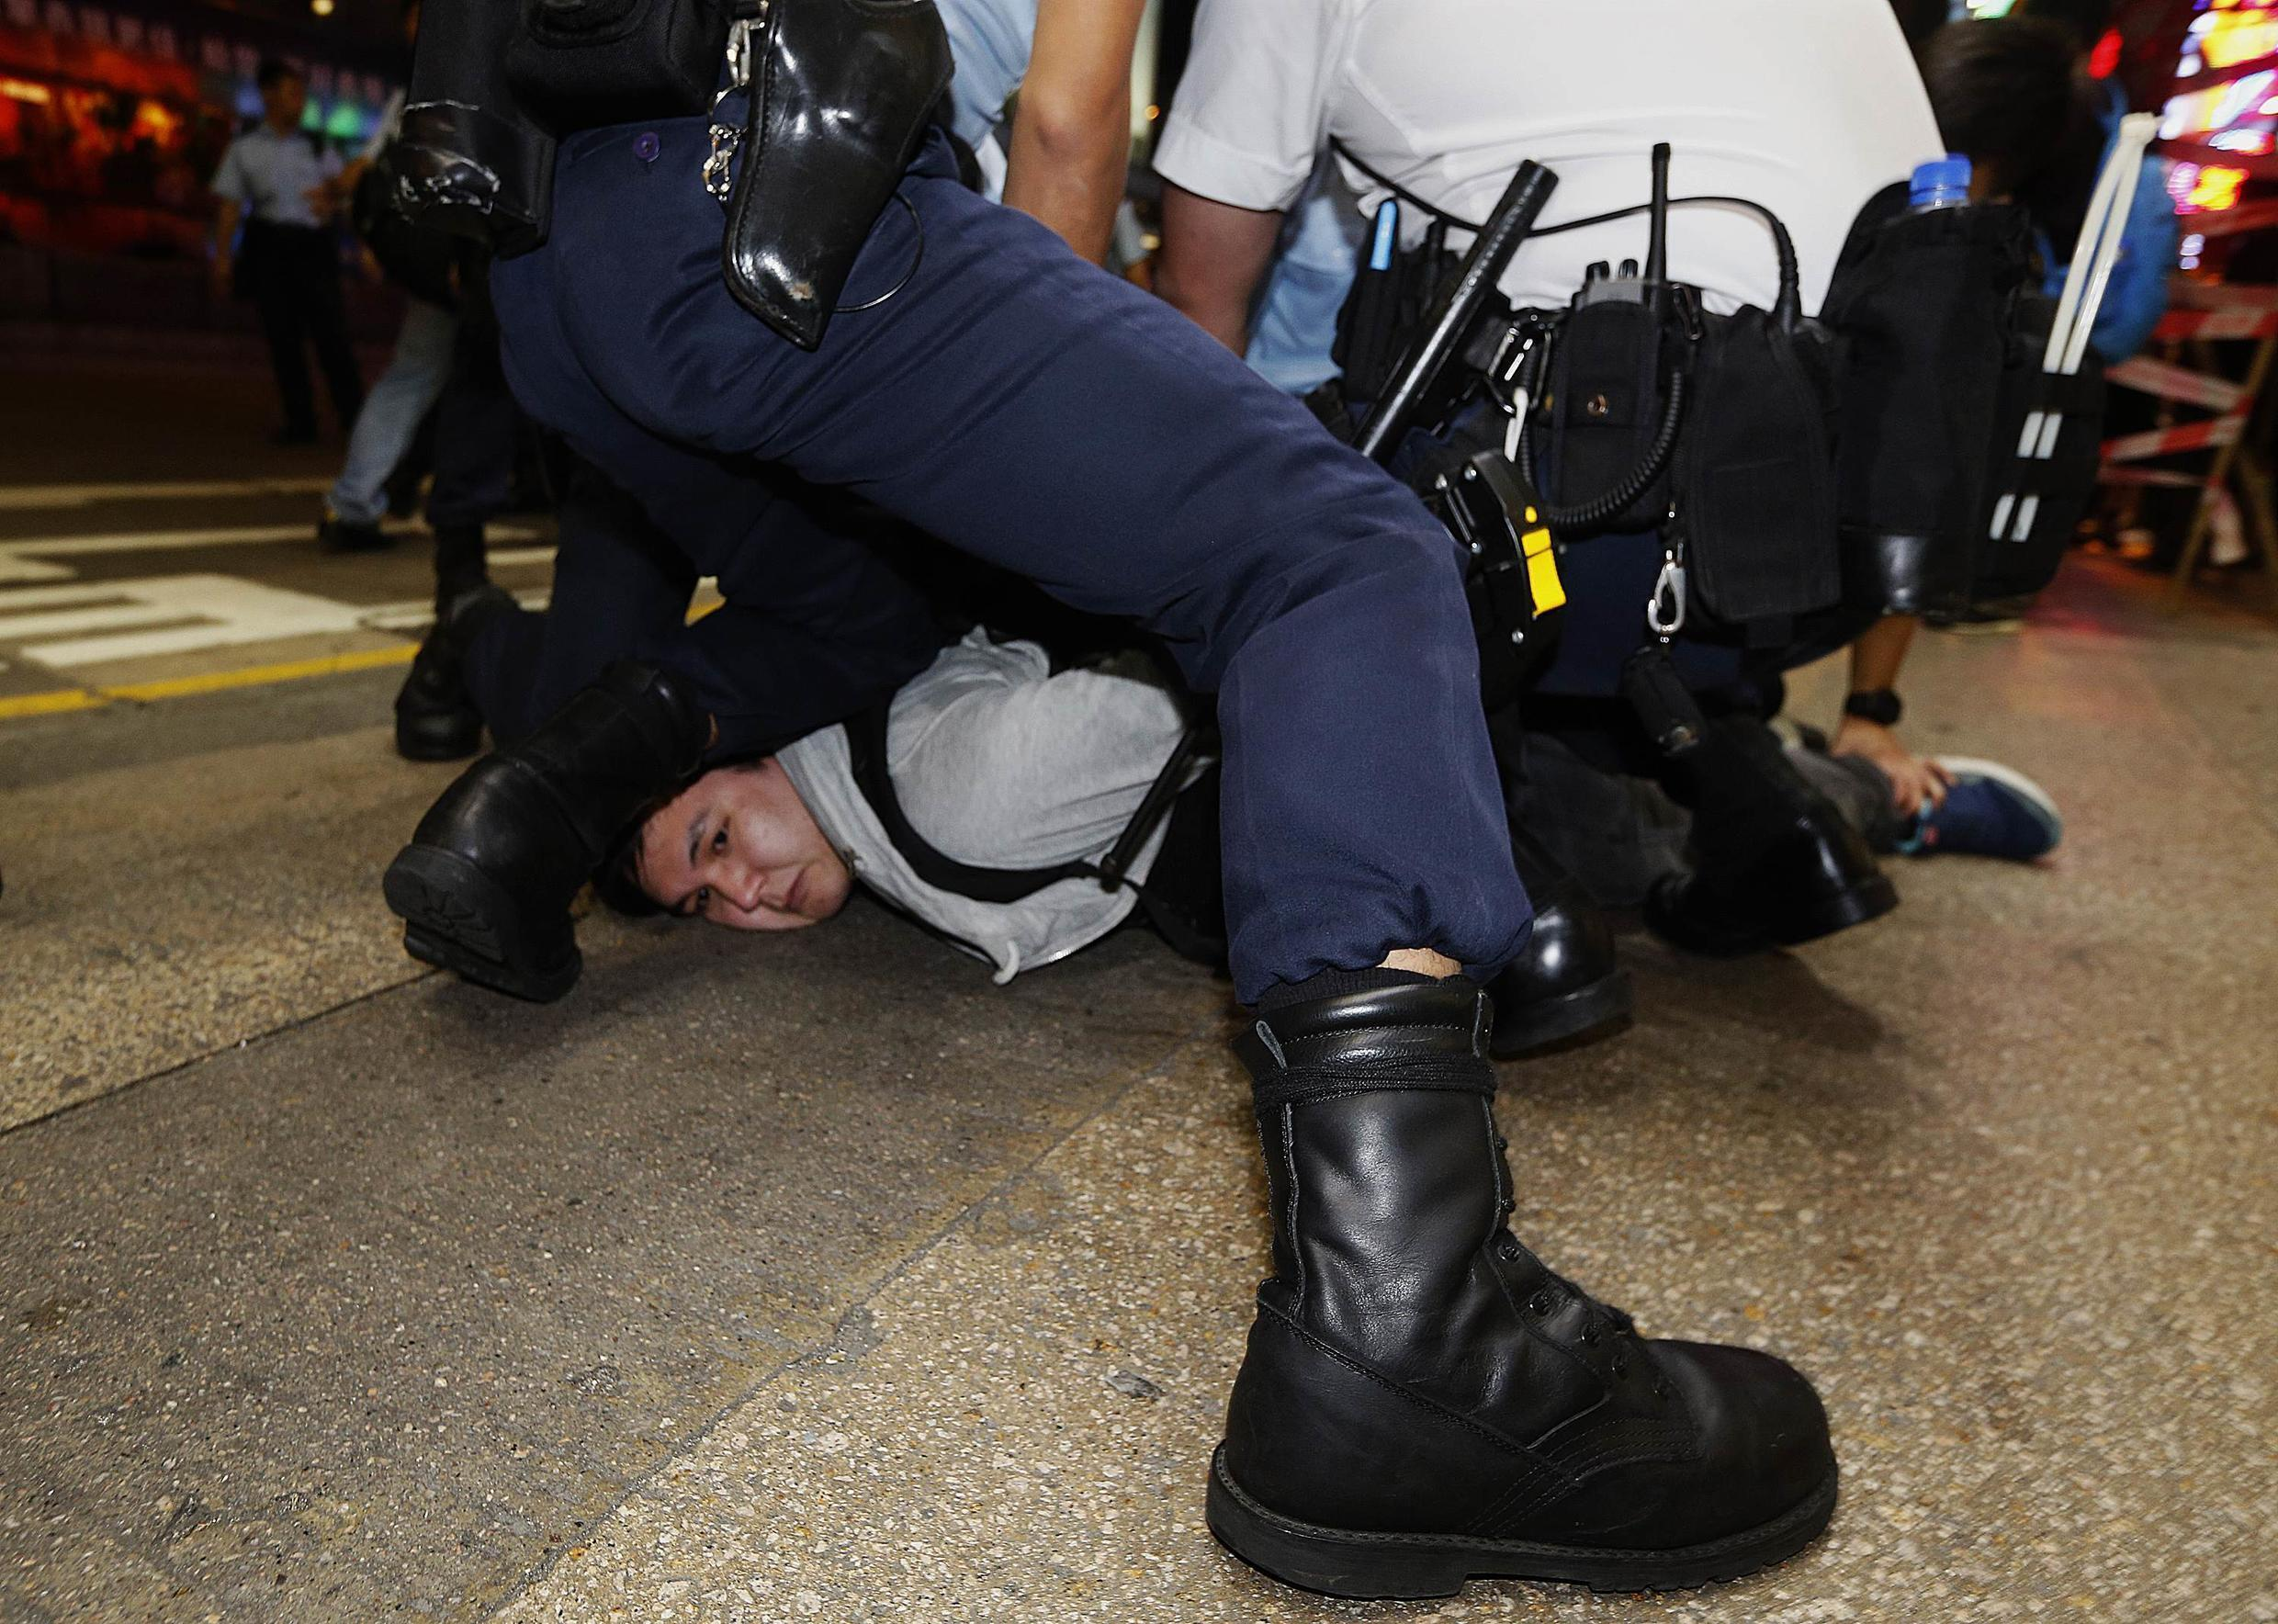 A protester is detained by the police during a confrontation at Mongkok shopping district in Hong Kong November 26, 2014.